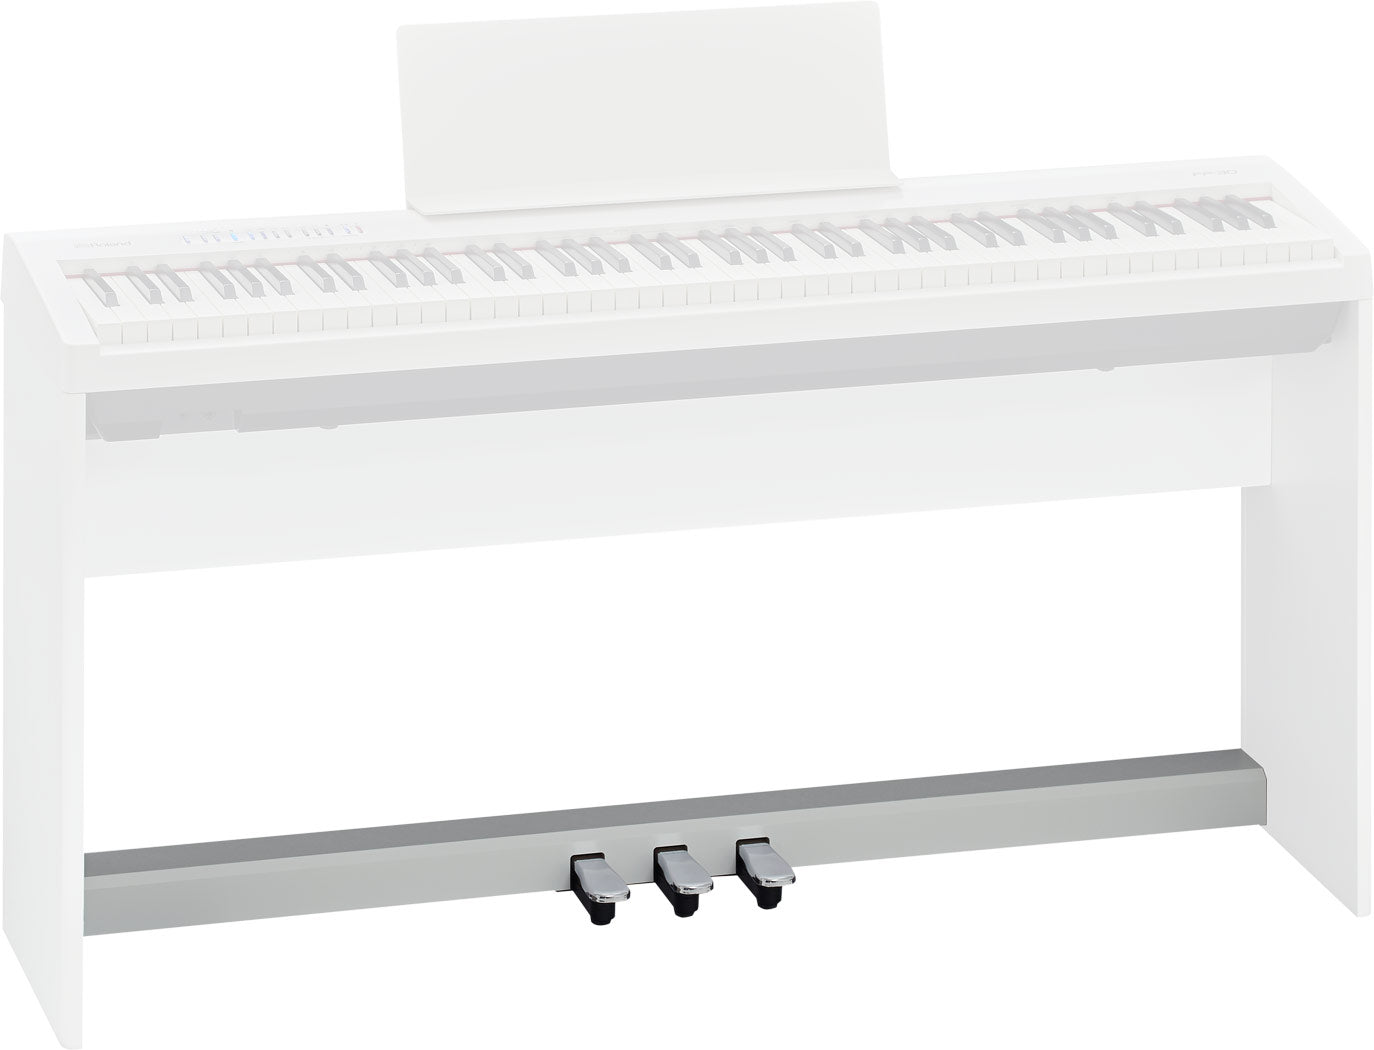 Roland KPD-70 Pedal Unit for FP-30 Digital Piano - White